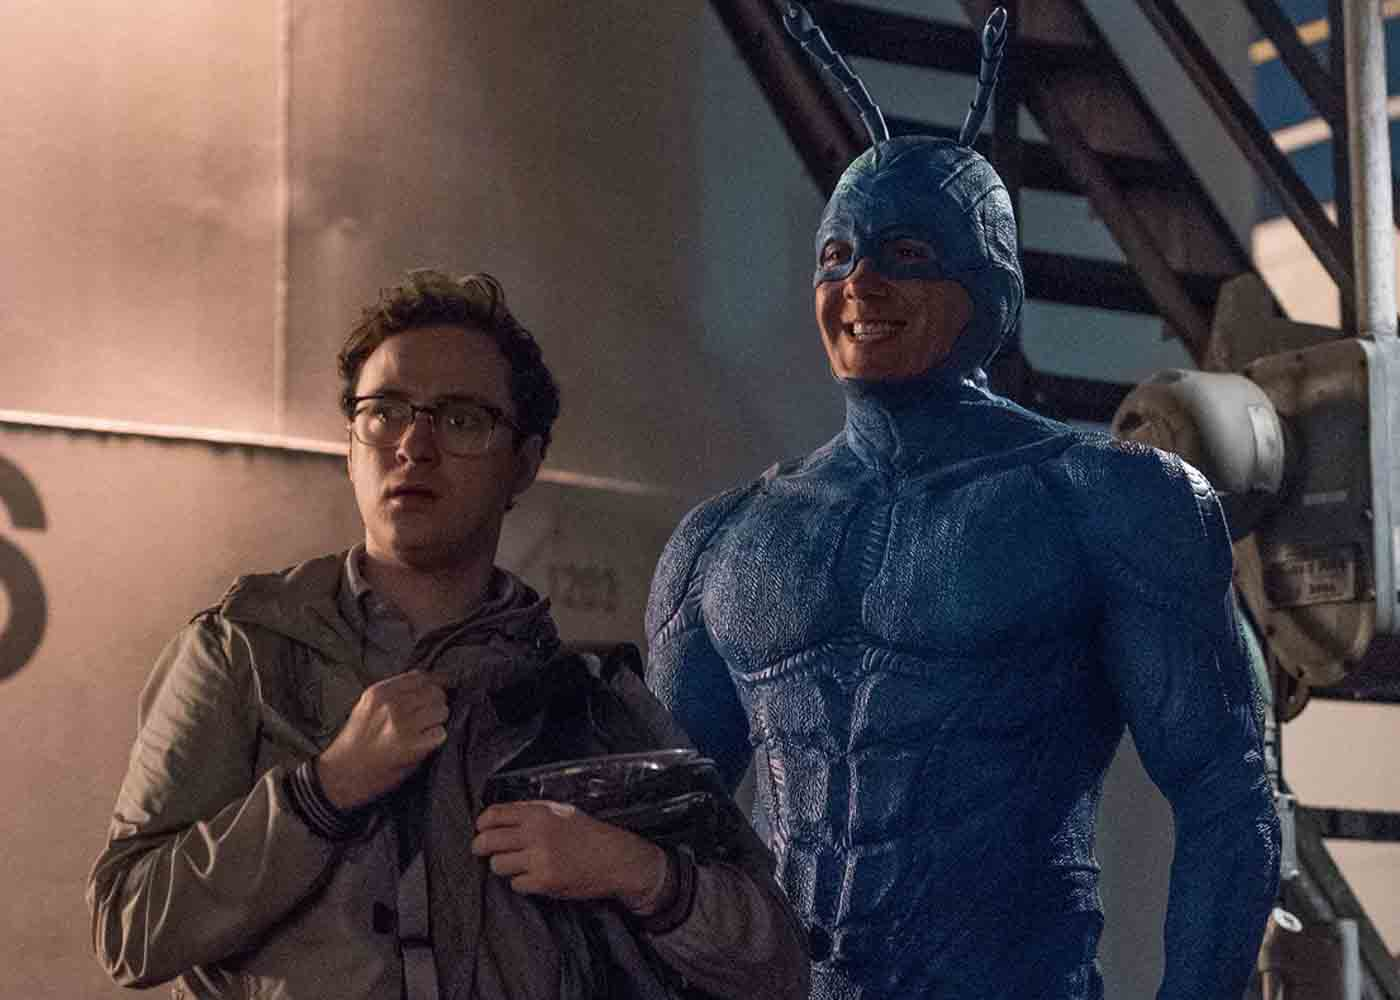 First Trailer Released for Amazon's Upcoming Superhero Series, The Tick